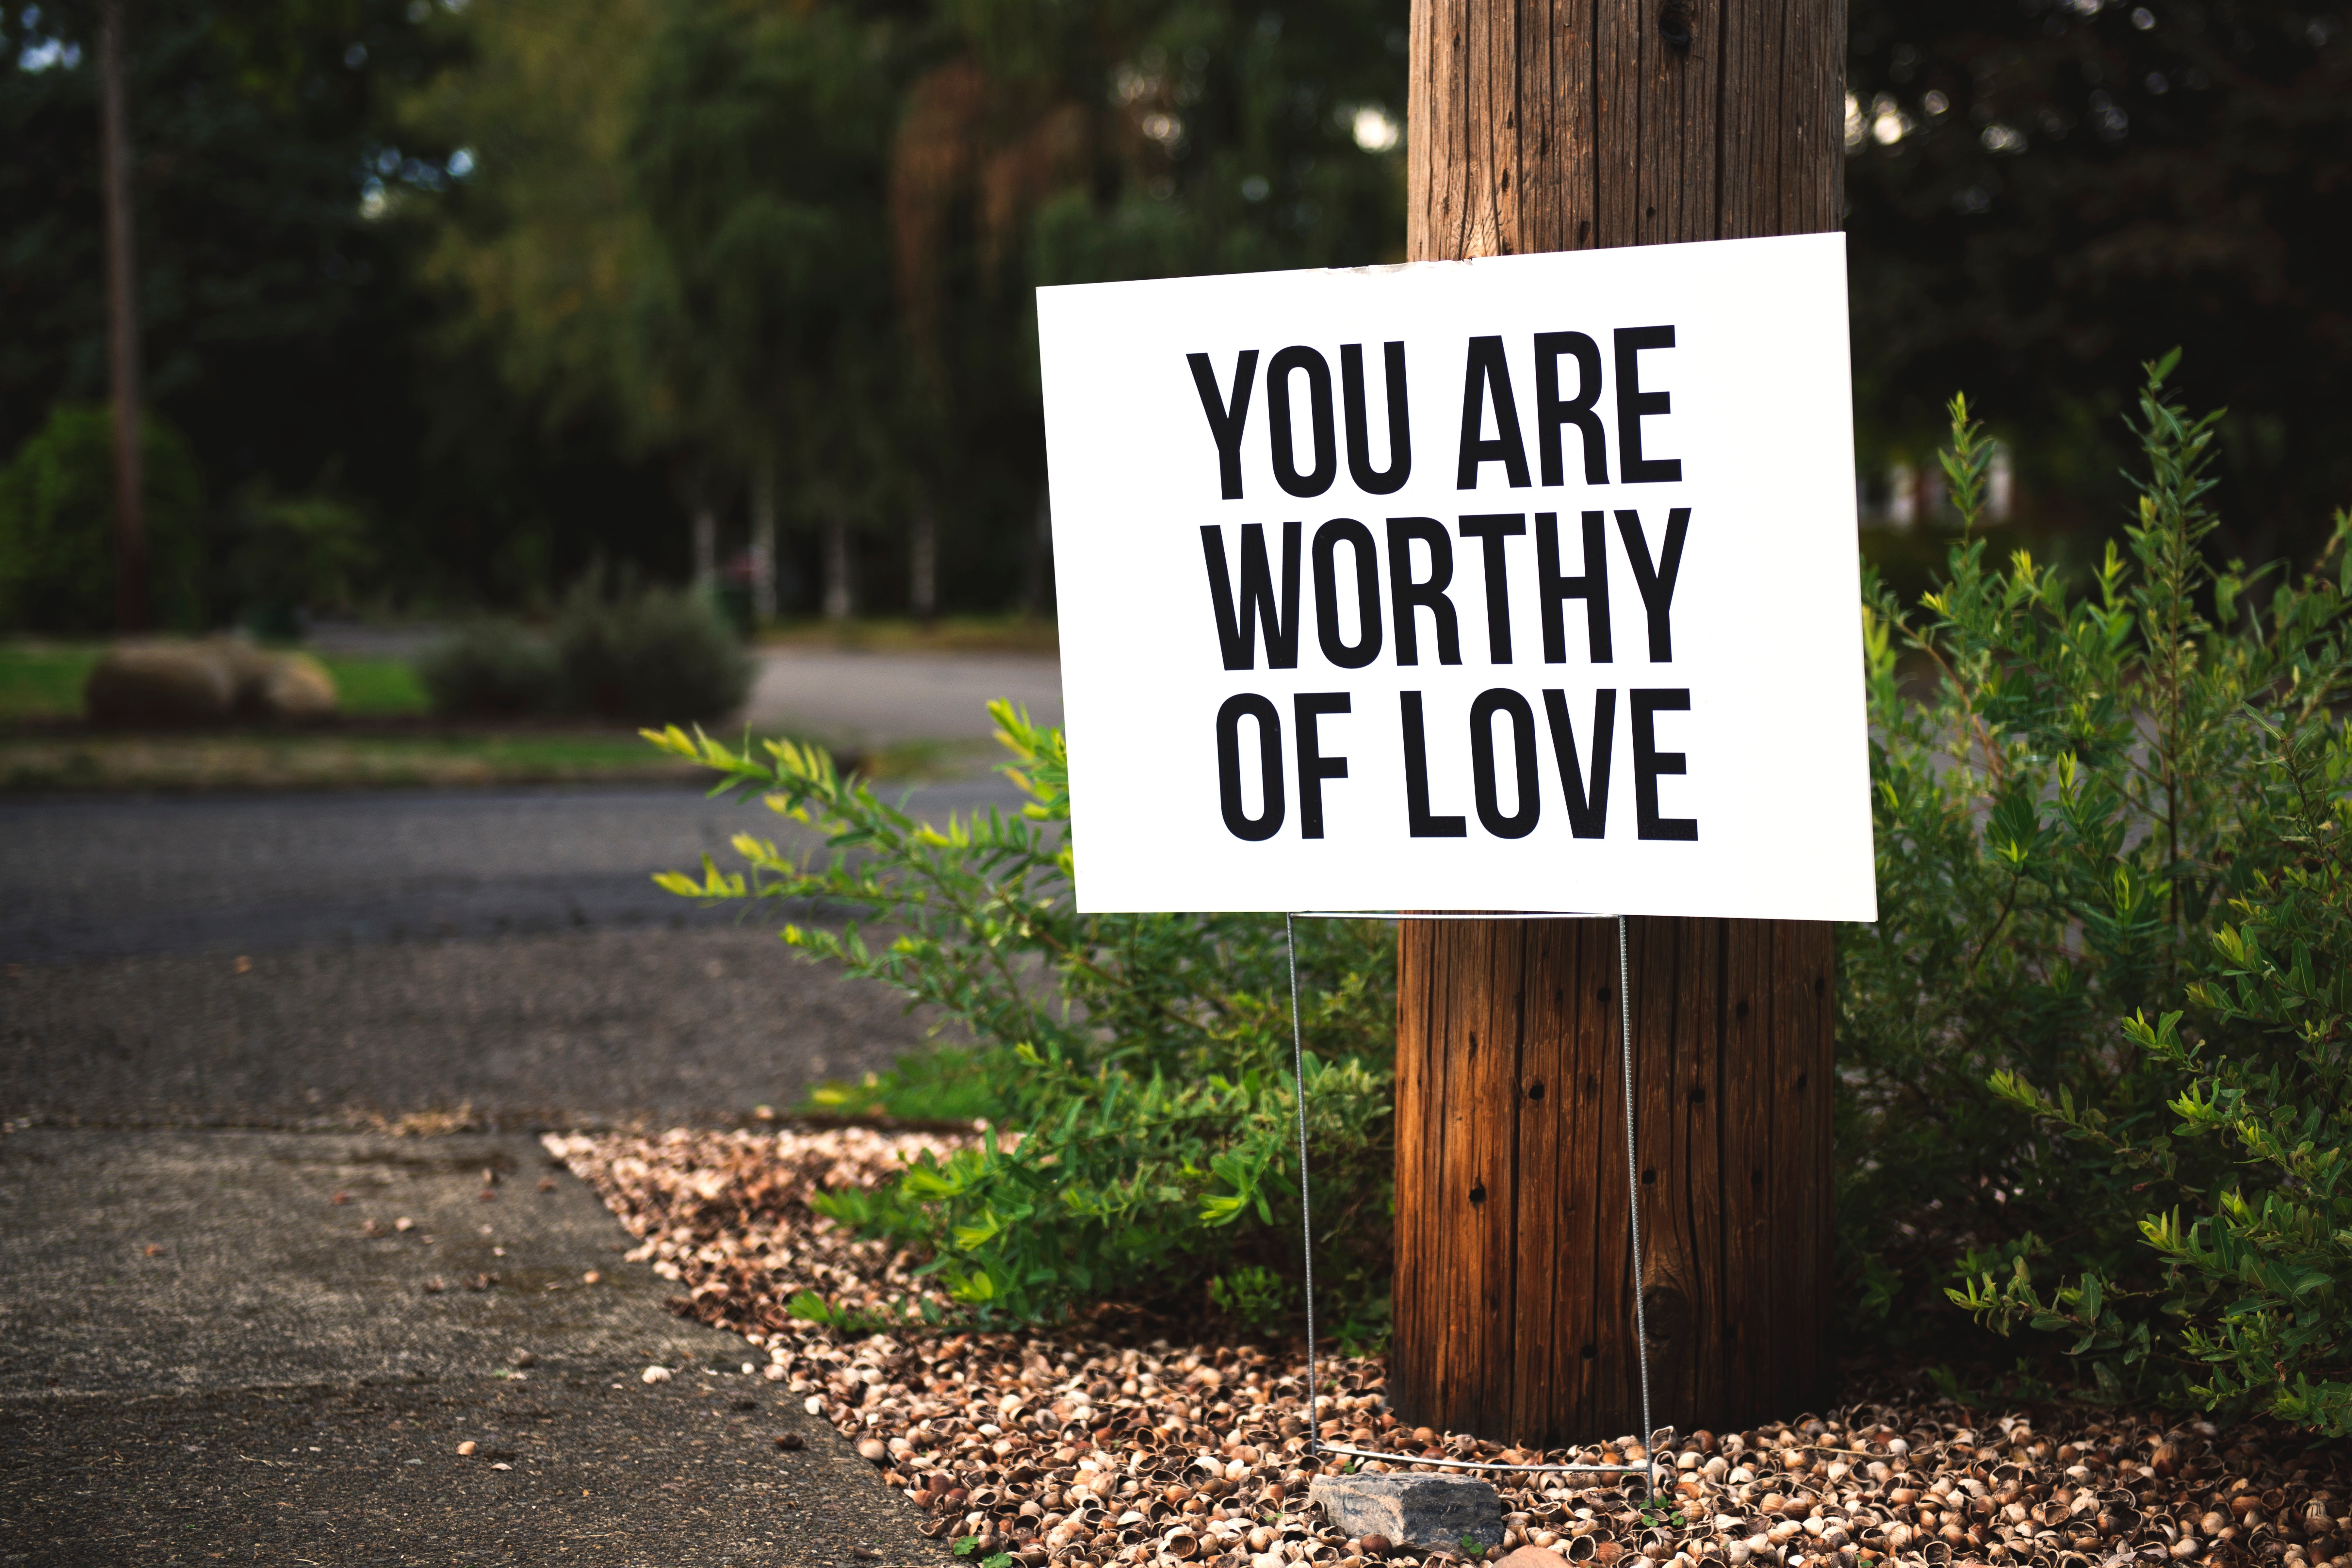 You are worthy of love signage on brown wooden post taken photo